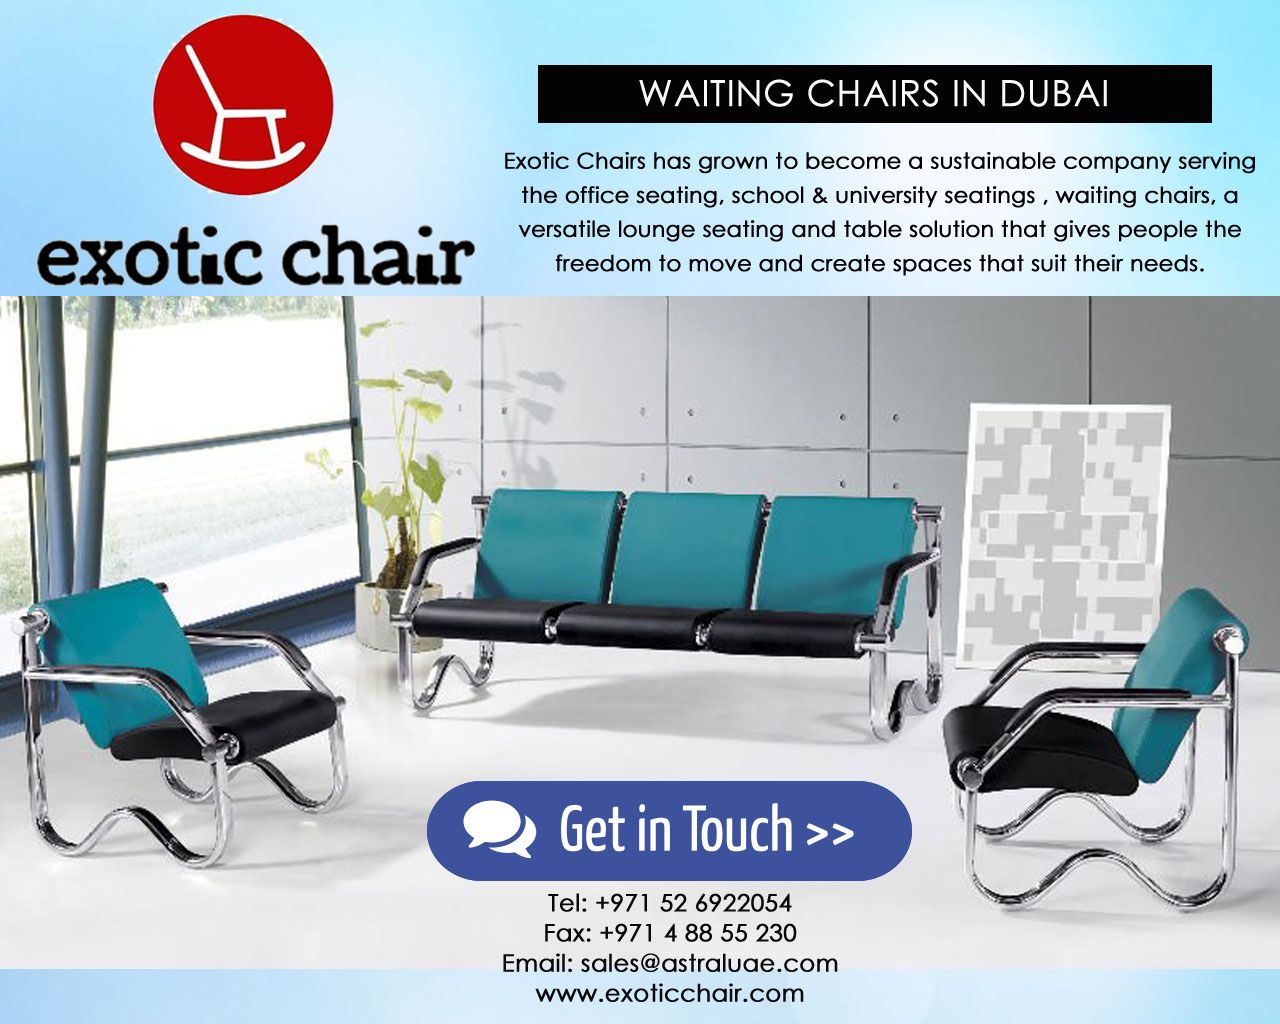 stylish office waiting room furniture. At Exotic Chairs, Our Collection Of Waiting Chairs Provides You With Stylish And Comfortable Reception Office Room Furniture